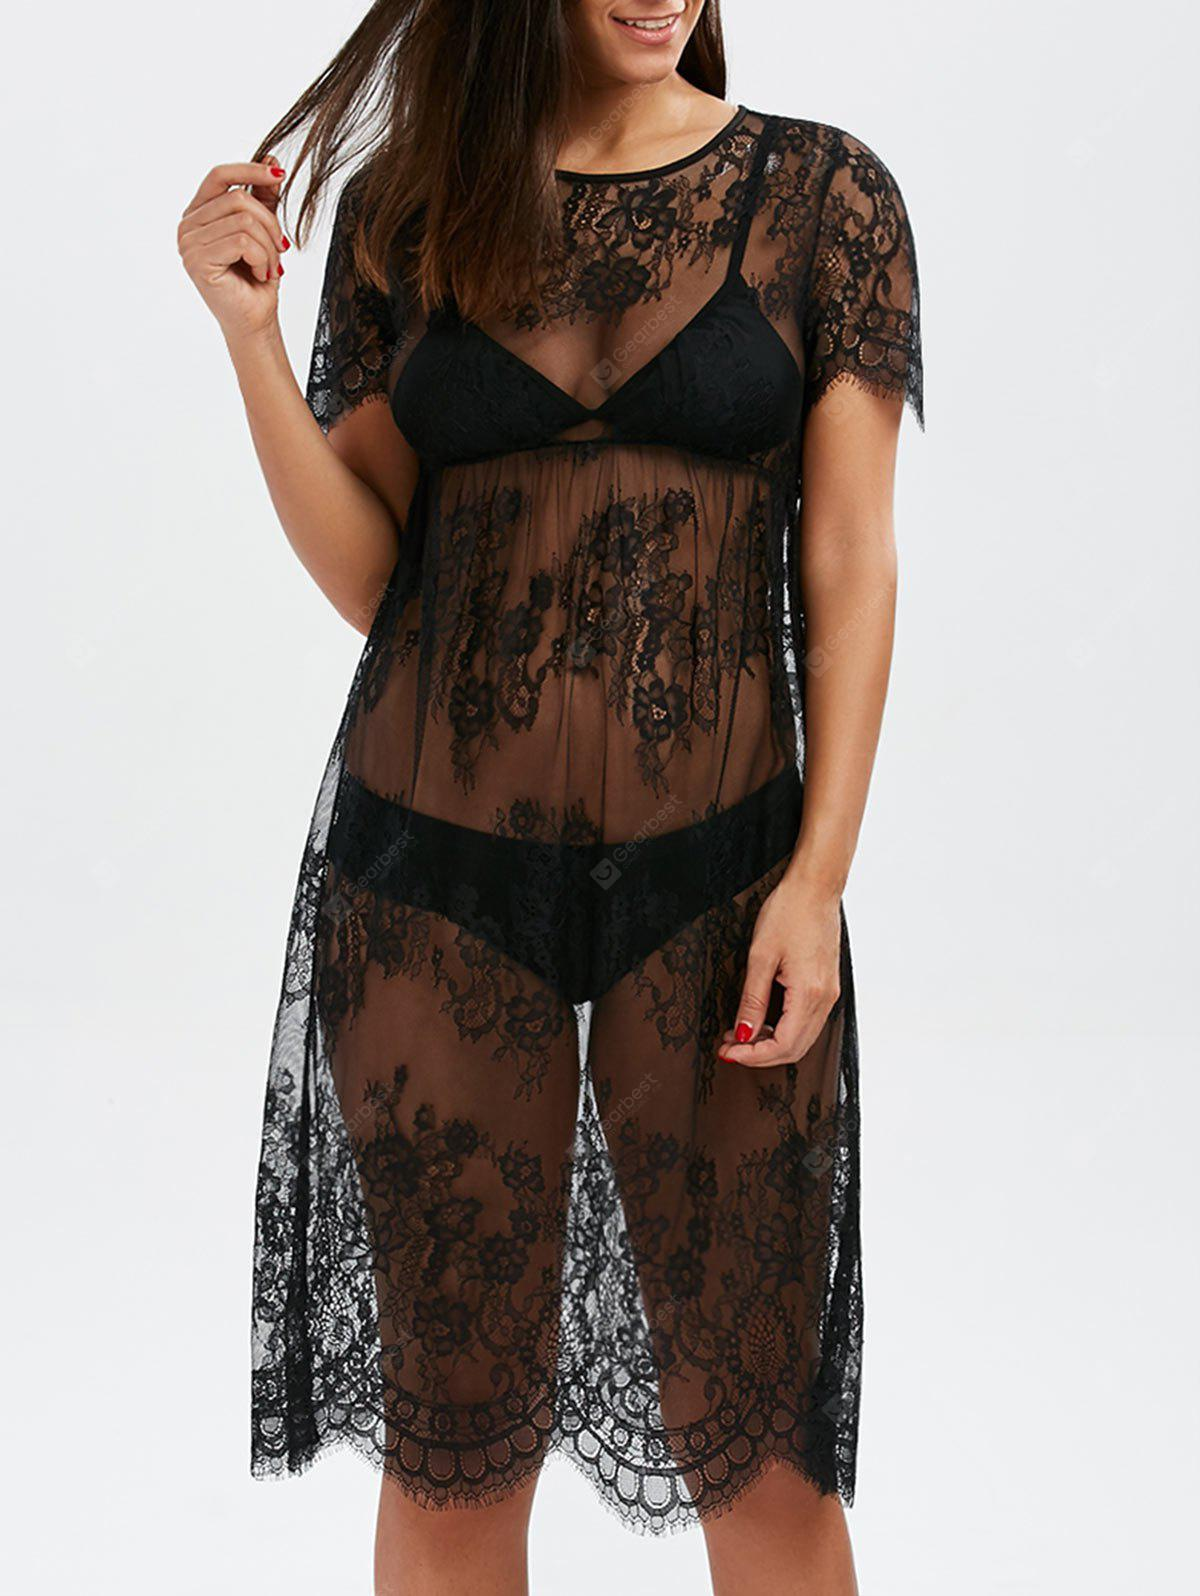 Floral Scalloped Lace Long Tunic Cover-Ups Dress